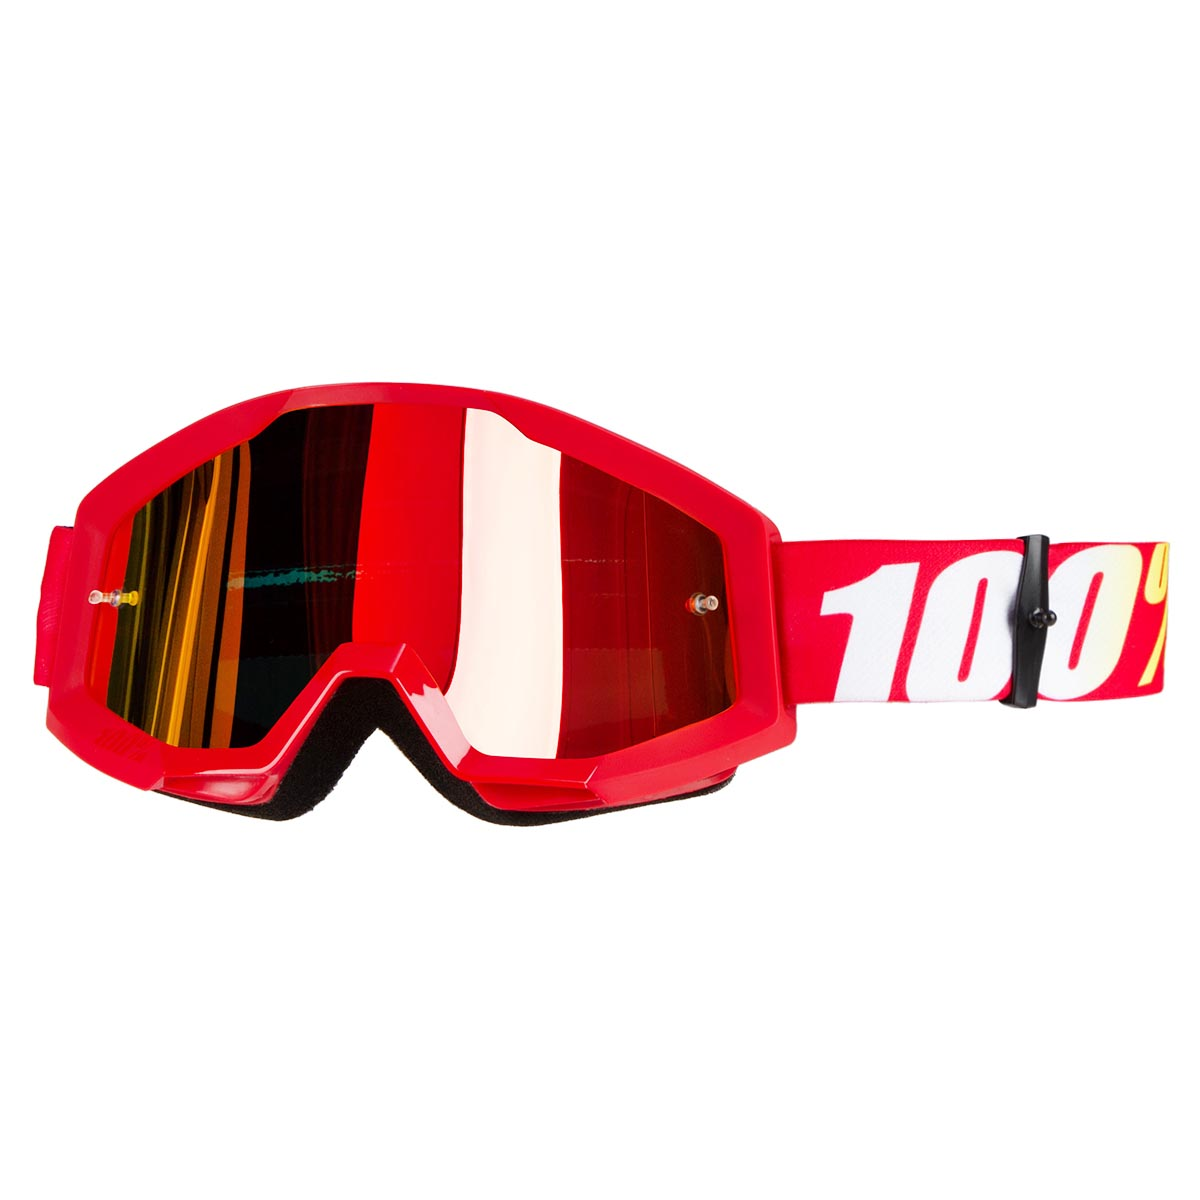 100% Crossbrille The Strata Furnace - Rot verspiegelt Anti-Fog